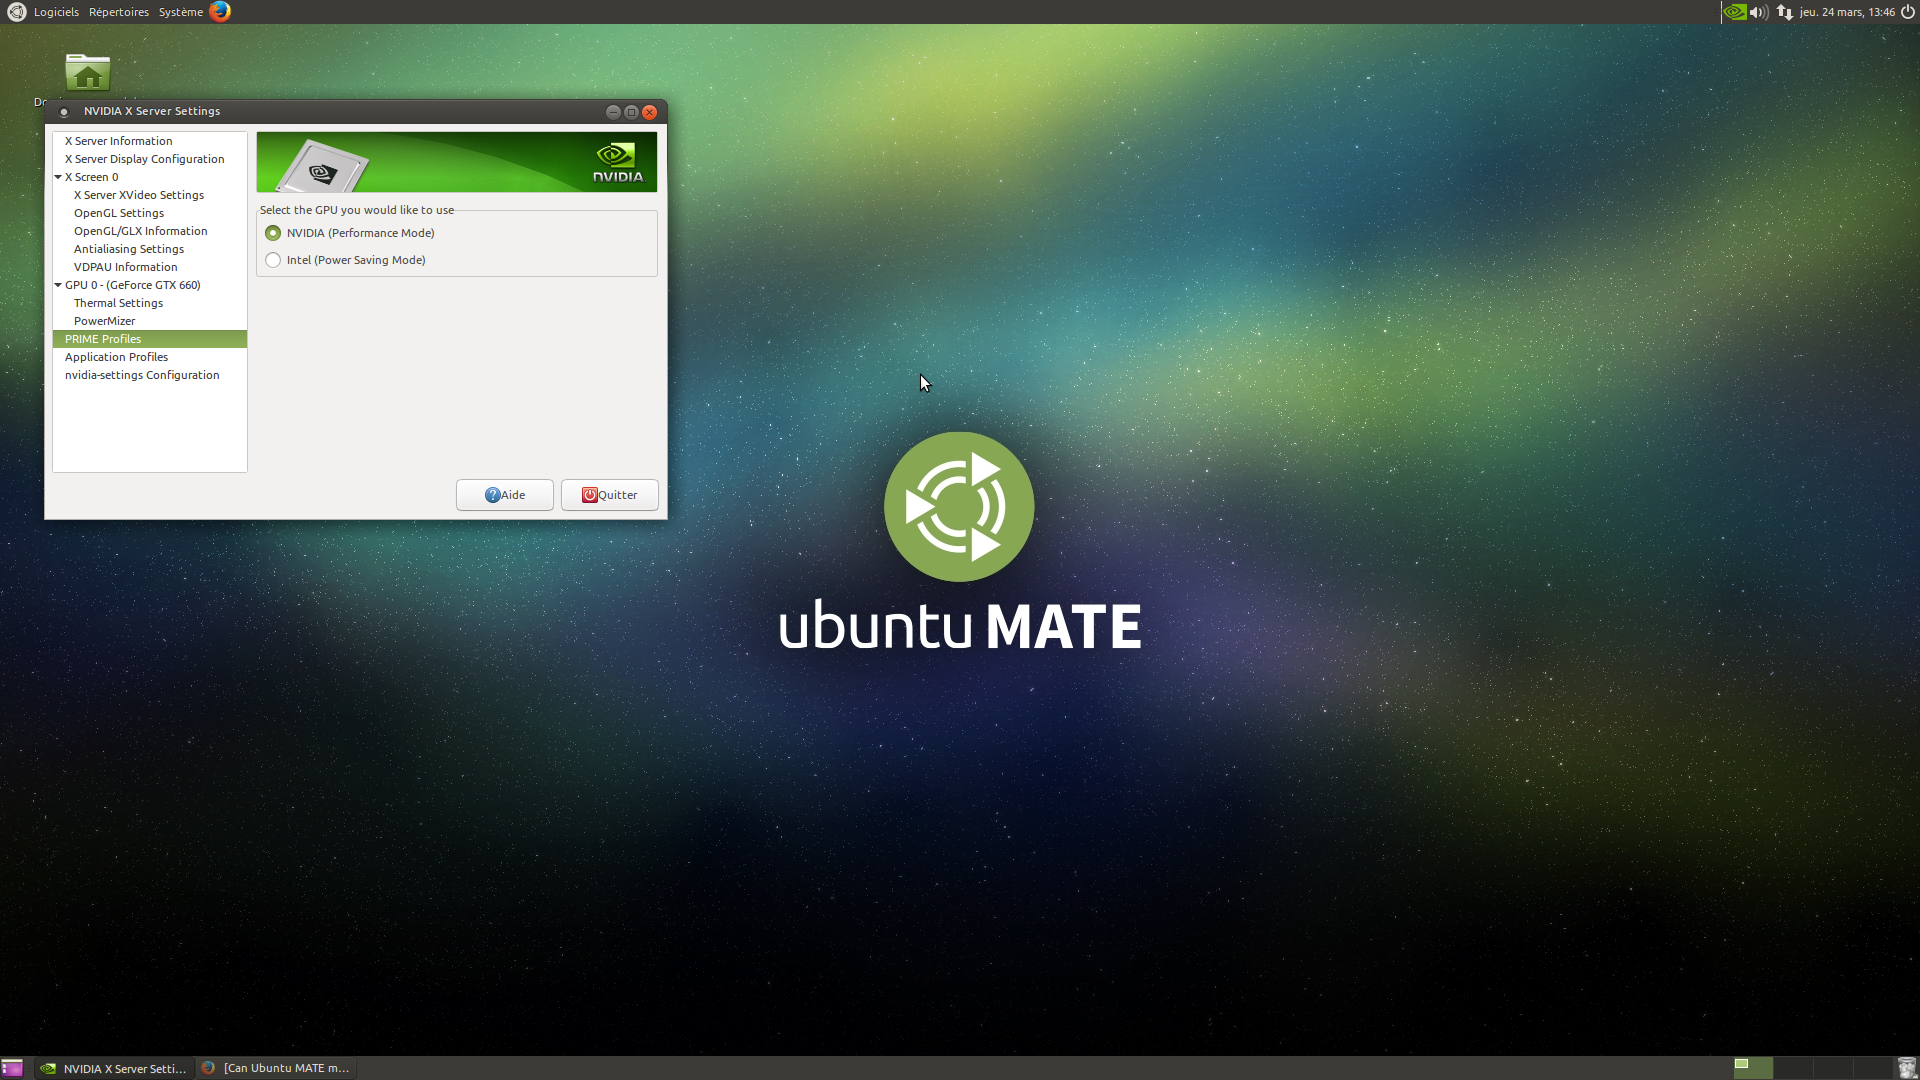 Ubuntu MATE both Onboard Graphics + Discrete Card ? Optimus, tearing